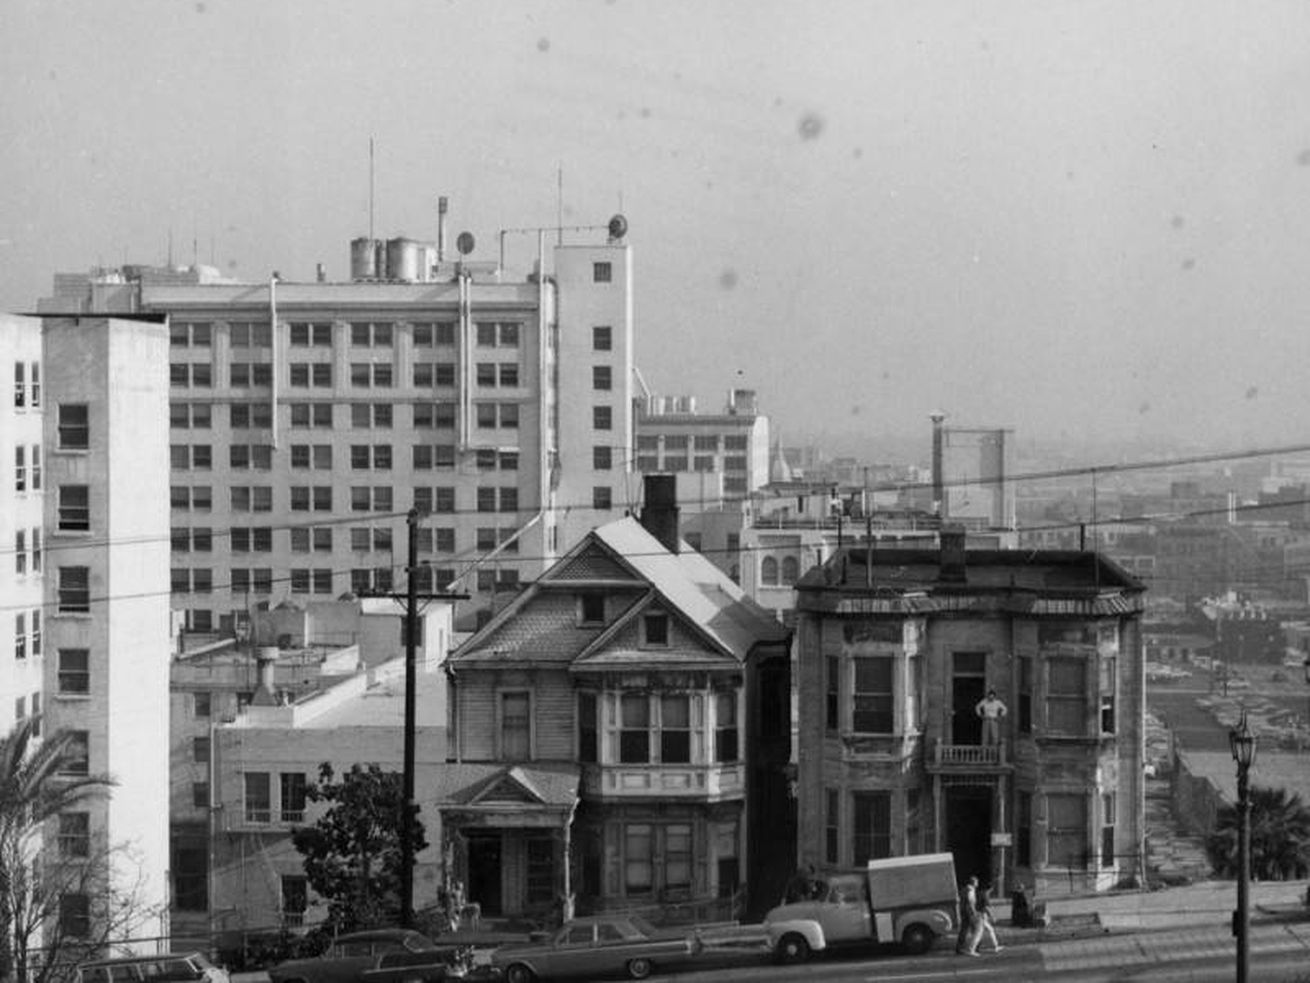 Bunker Hill as it appeared prior to redevelopment in the 1960s.